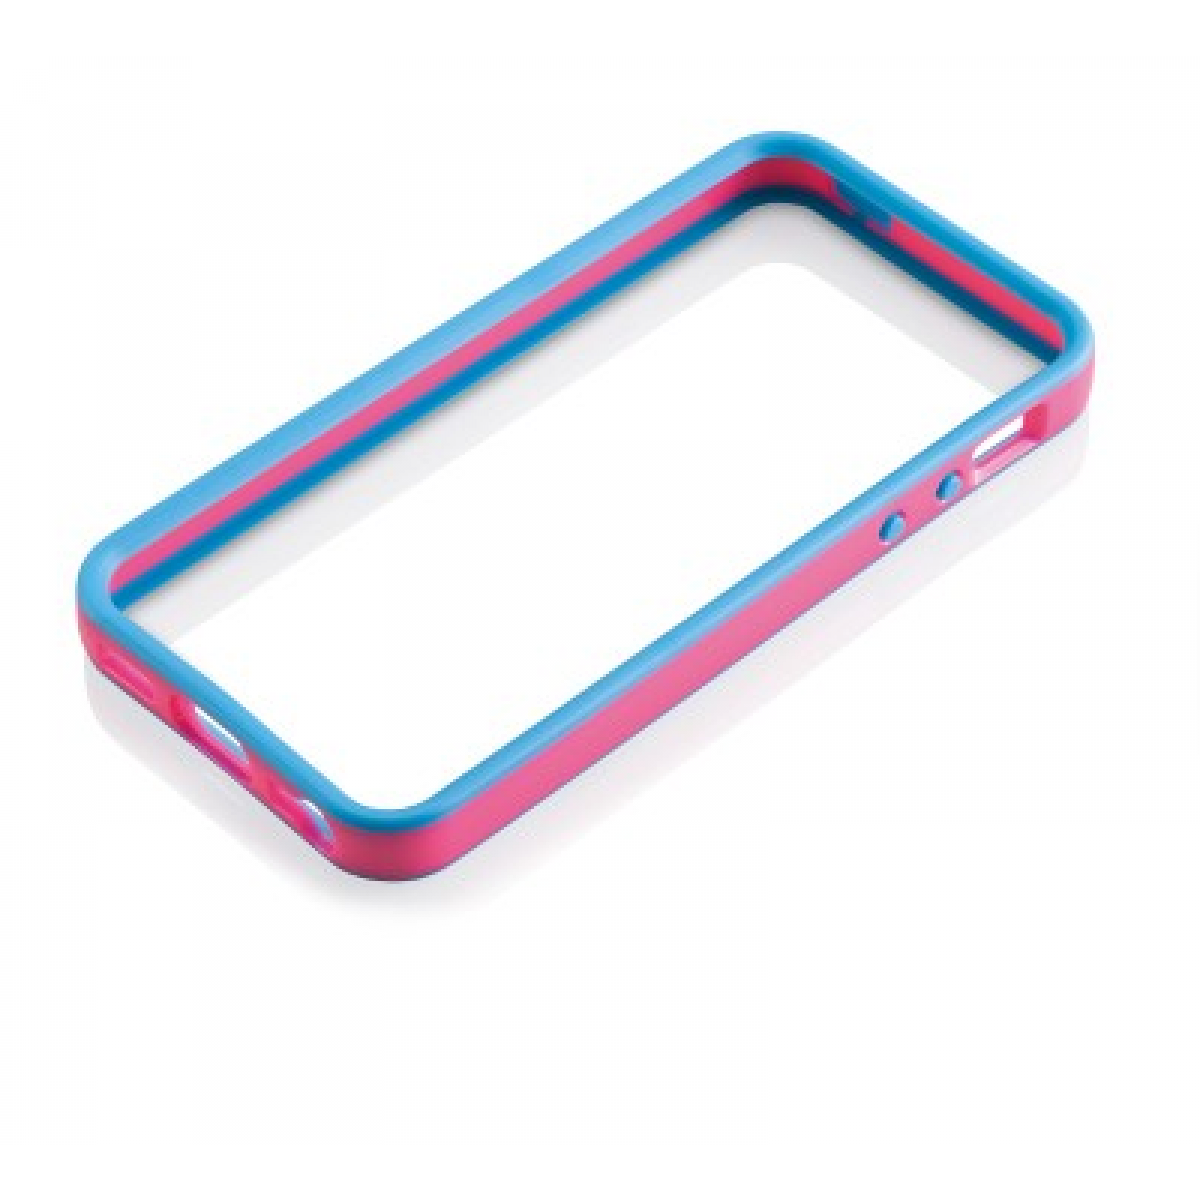 Bing: Gear4 The Band (IC508G) - Gear4 The Band (IC508G) - чехол для iPhone 5 (Blue/Pink)